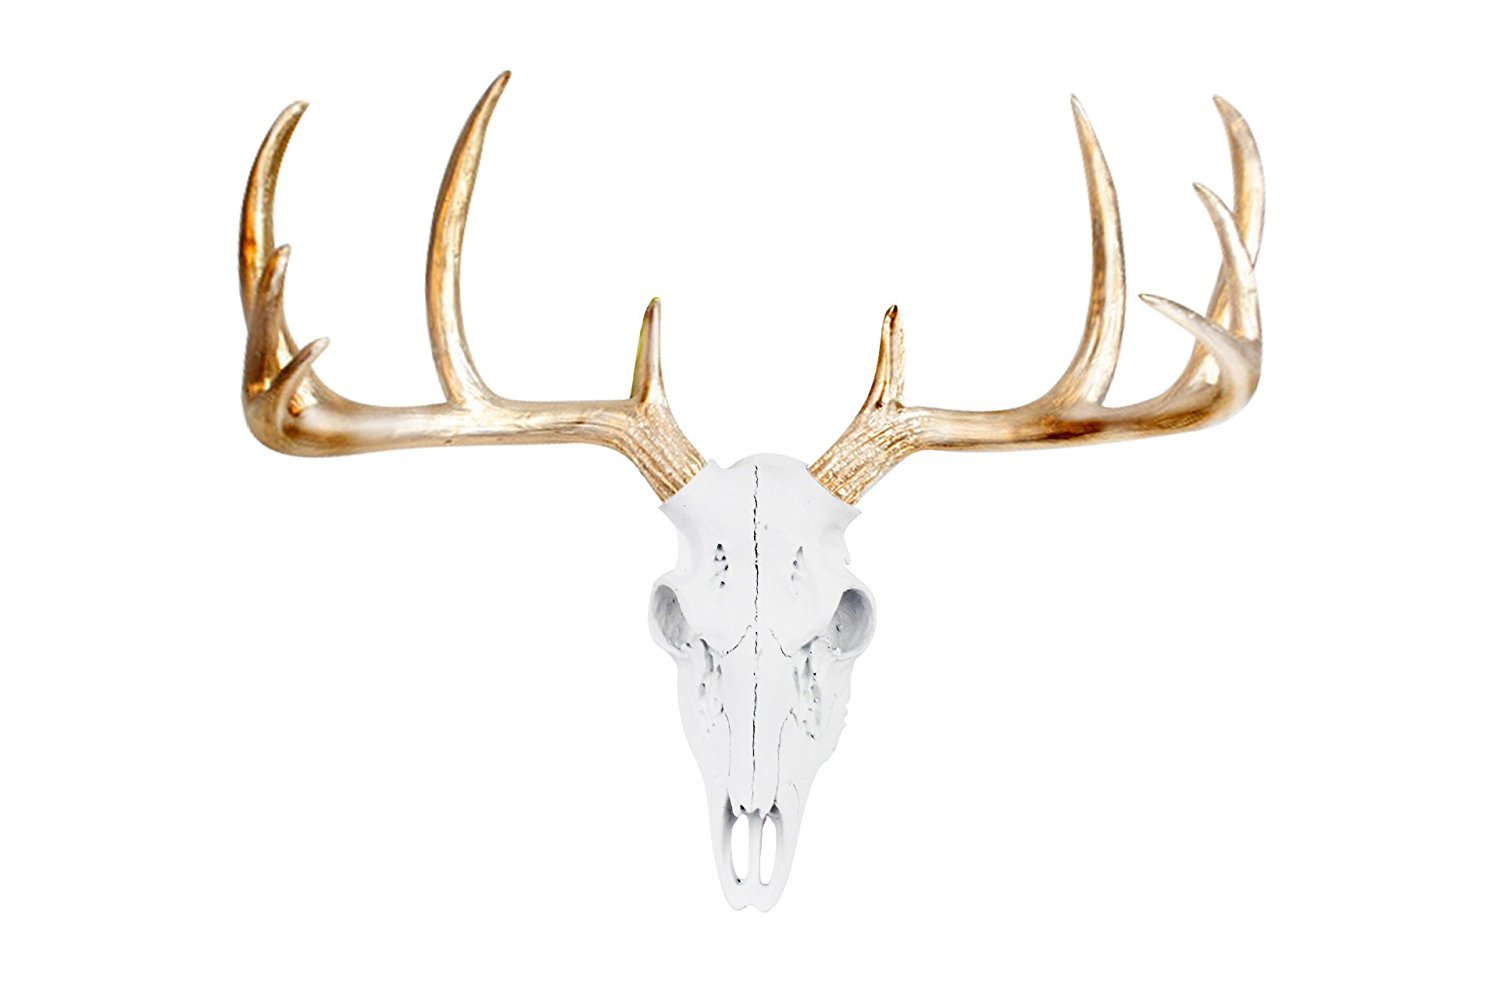 Wall Charmers Large White + Gold Antler Faux Deer Skull Decor - 21 inch Faux Taxidermy Animal Head Wall Decor - Handmade Farmhouse Decor